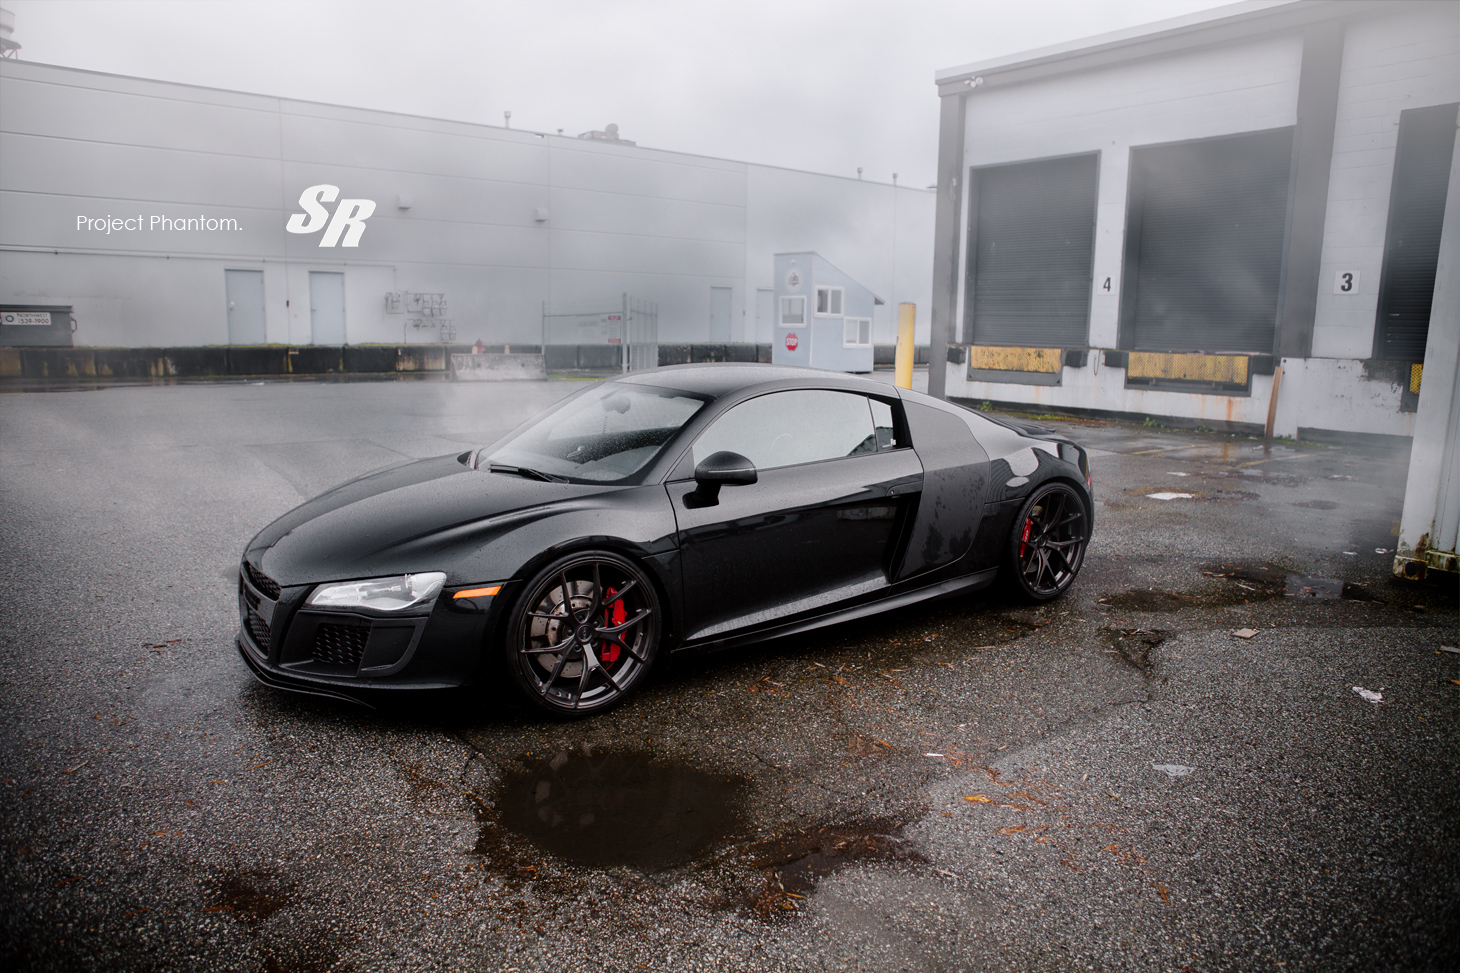 2013 Audi R8 Project Phantom By Sr Auto Group Top Speed